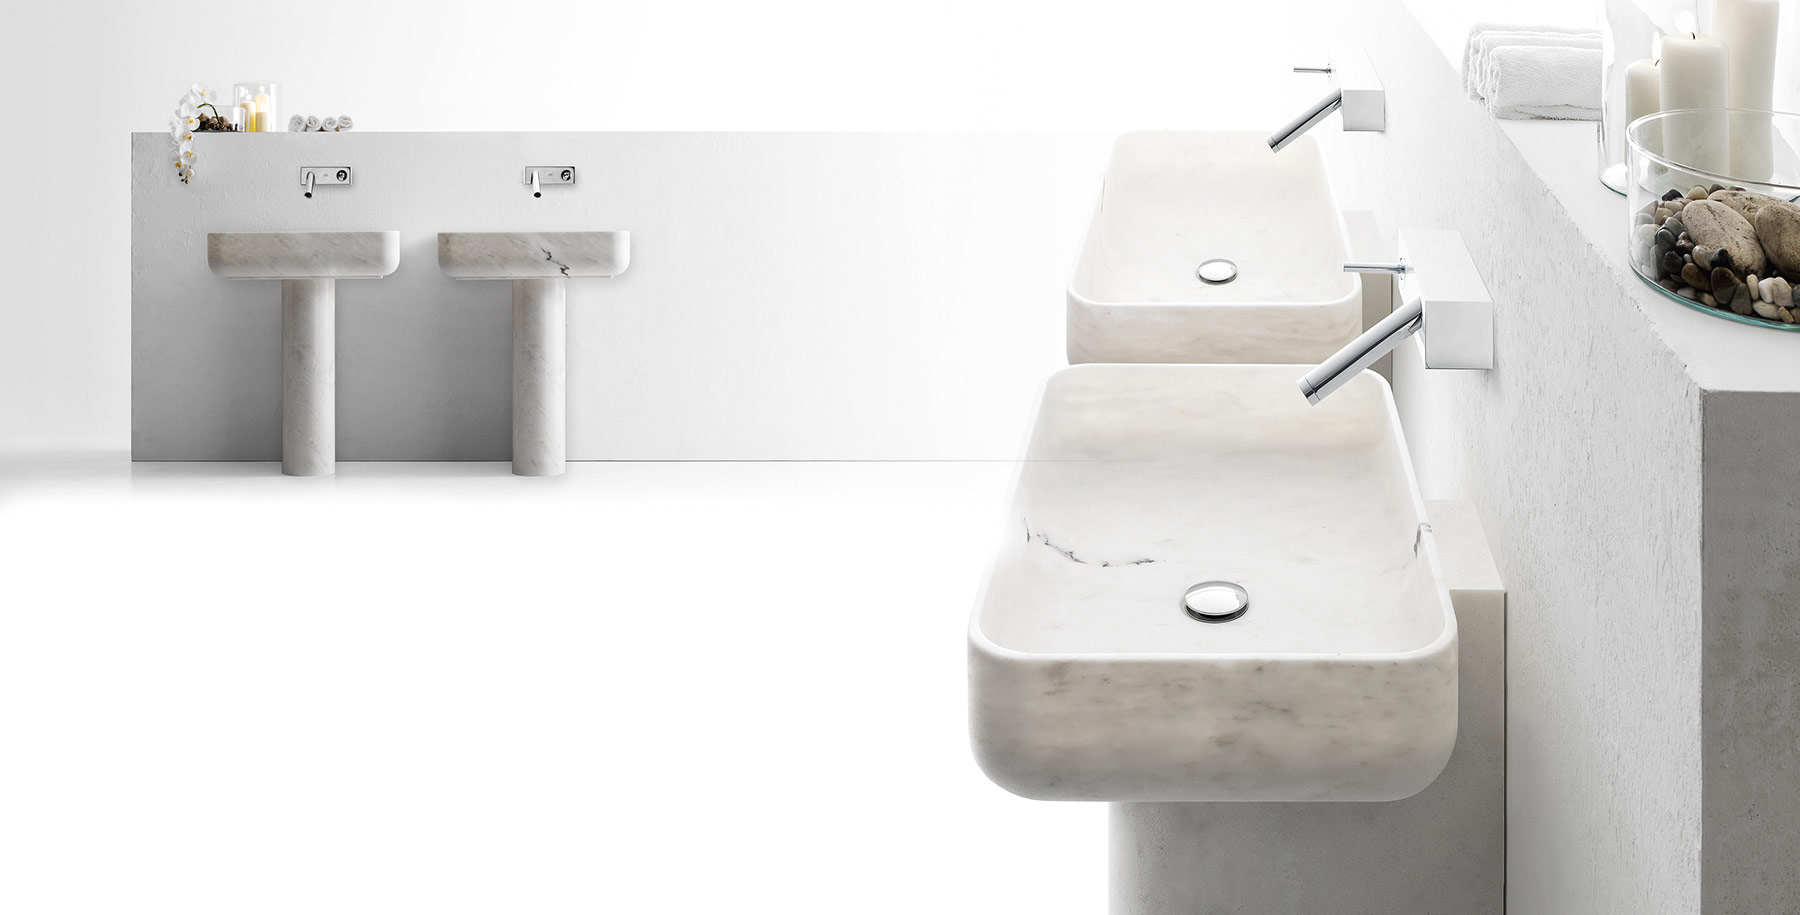 Transitional Nabhi Floor Mount Washbasin